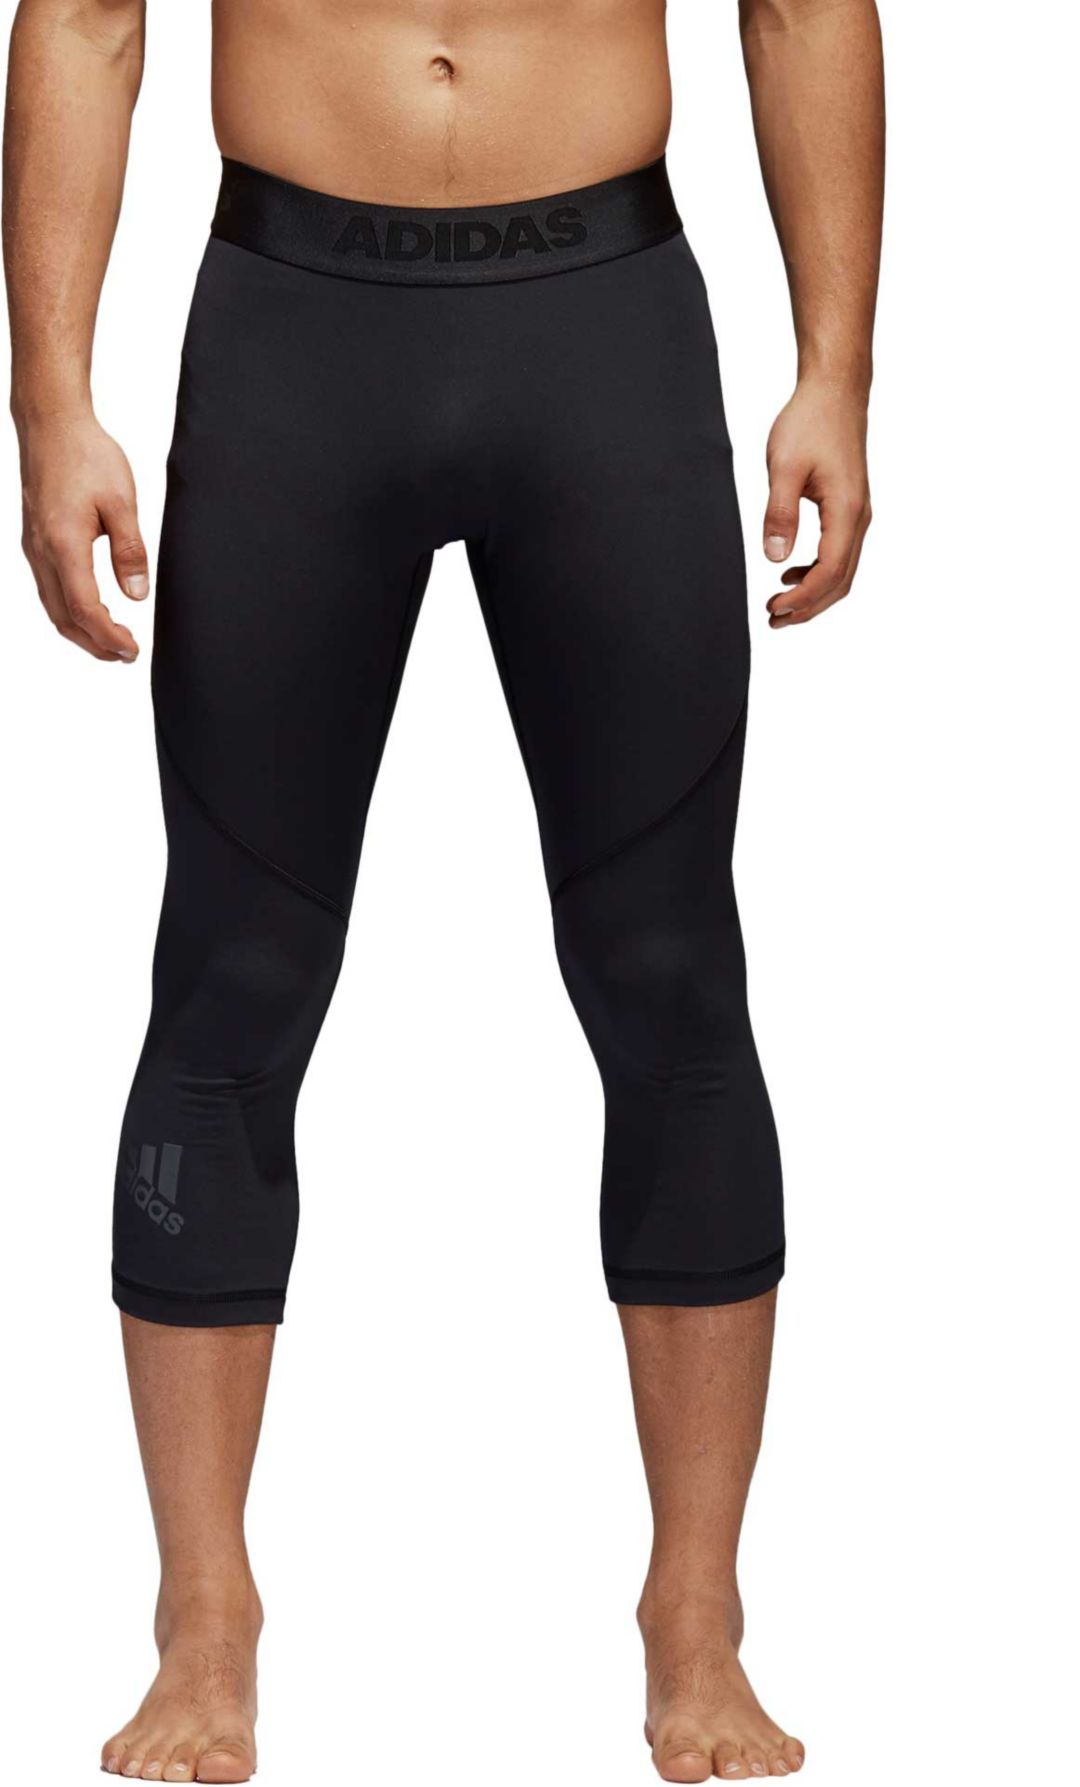 eedc0966117b2 adidas Men's Alphaskin 3/4 Training Tights | DICK'S Sporting Goods